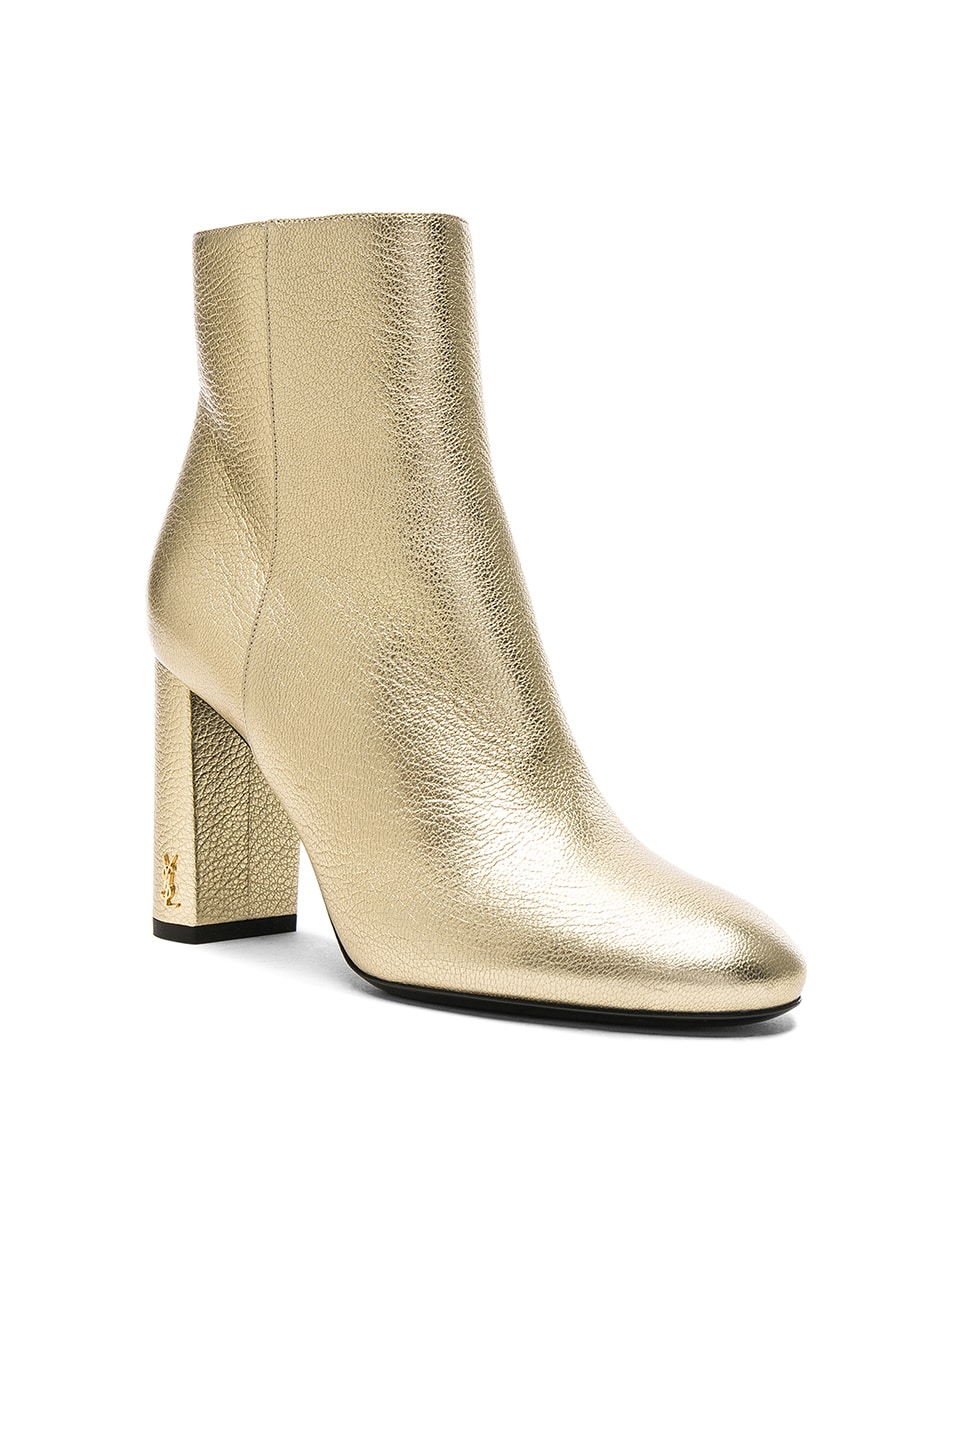 Image 2 of Saint Laurent Leather Loulou Boots in Pale Gold